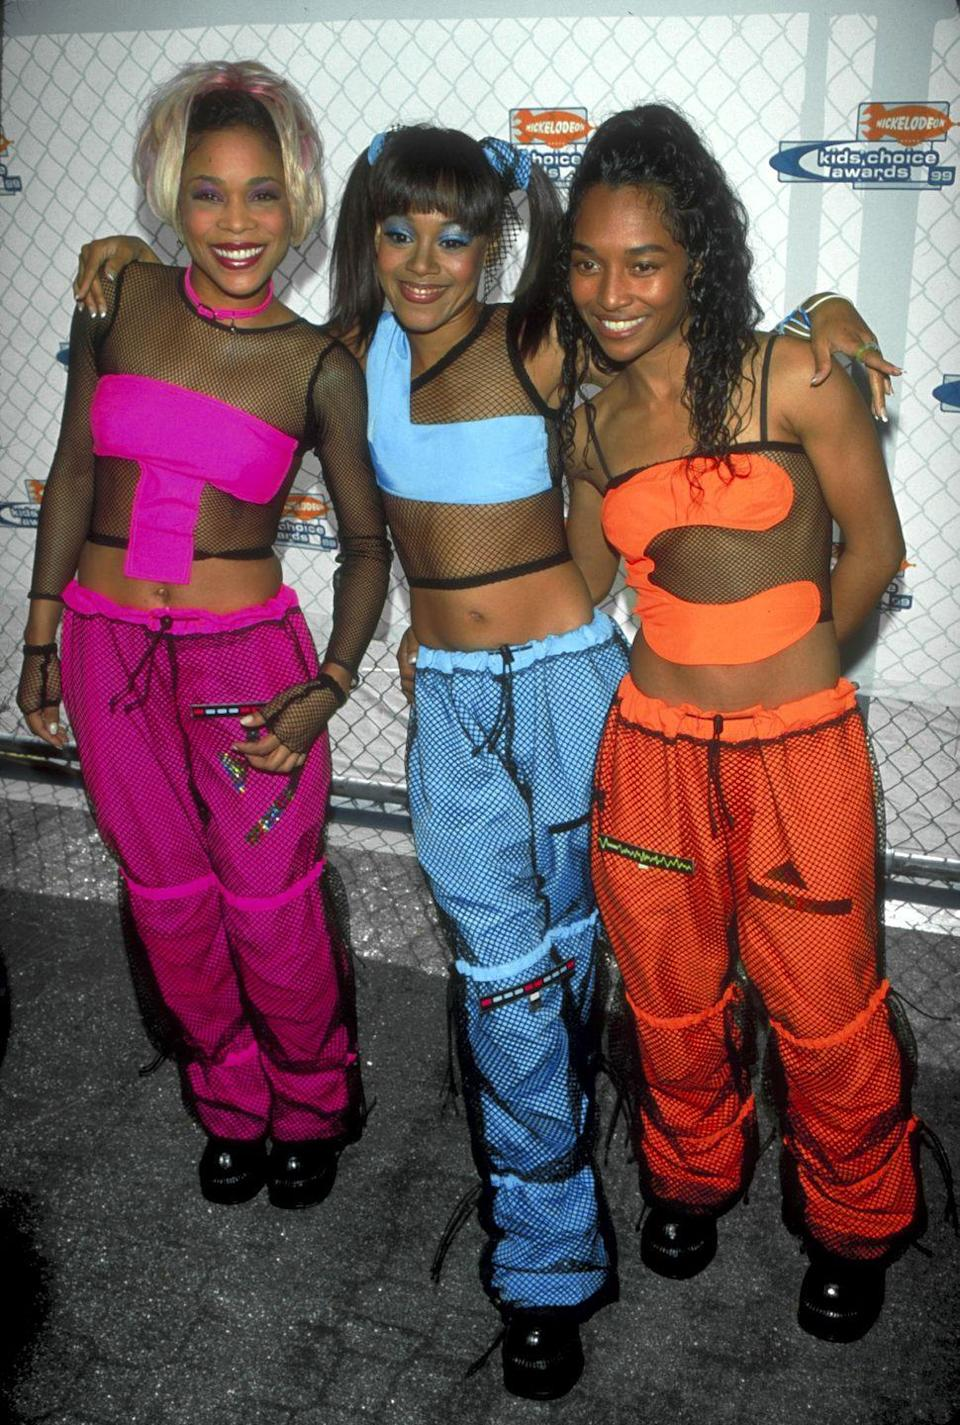 <p>The iconic girl group TLC turned up at the Nickelodeon Kids Choice Awards in coordinating neon 'fits that spelled out their band name. My question is: Did they have to walk around in that same order all night? </p>